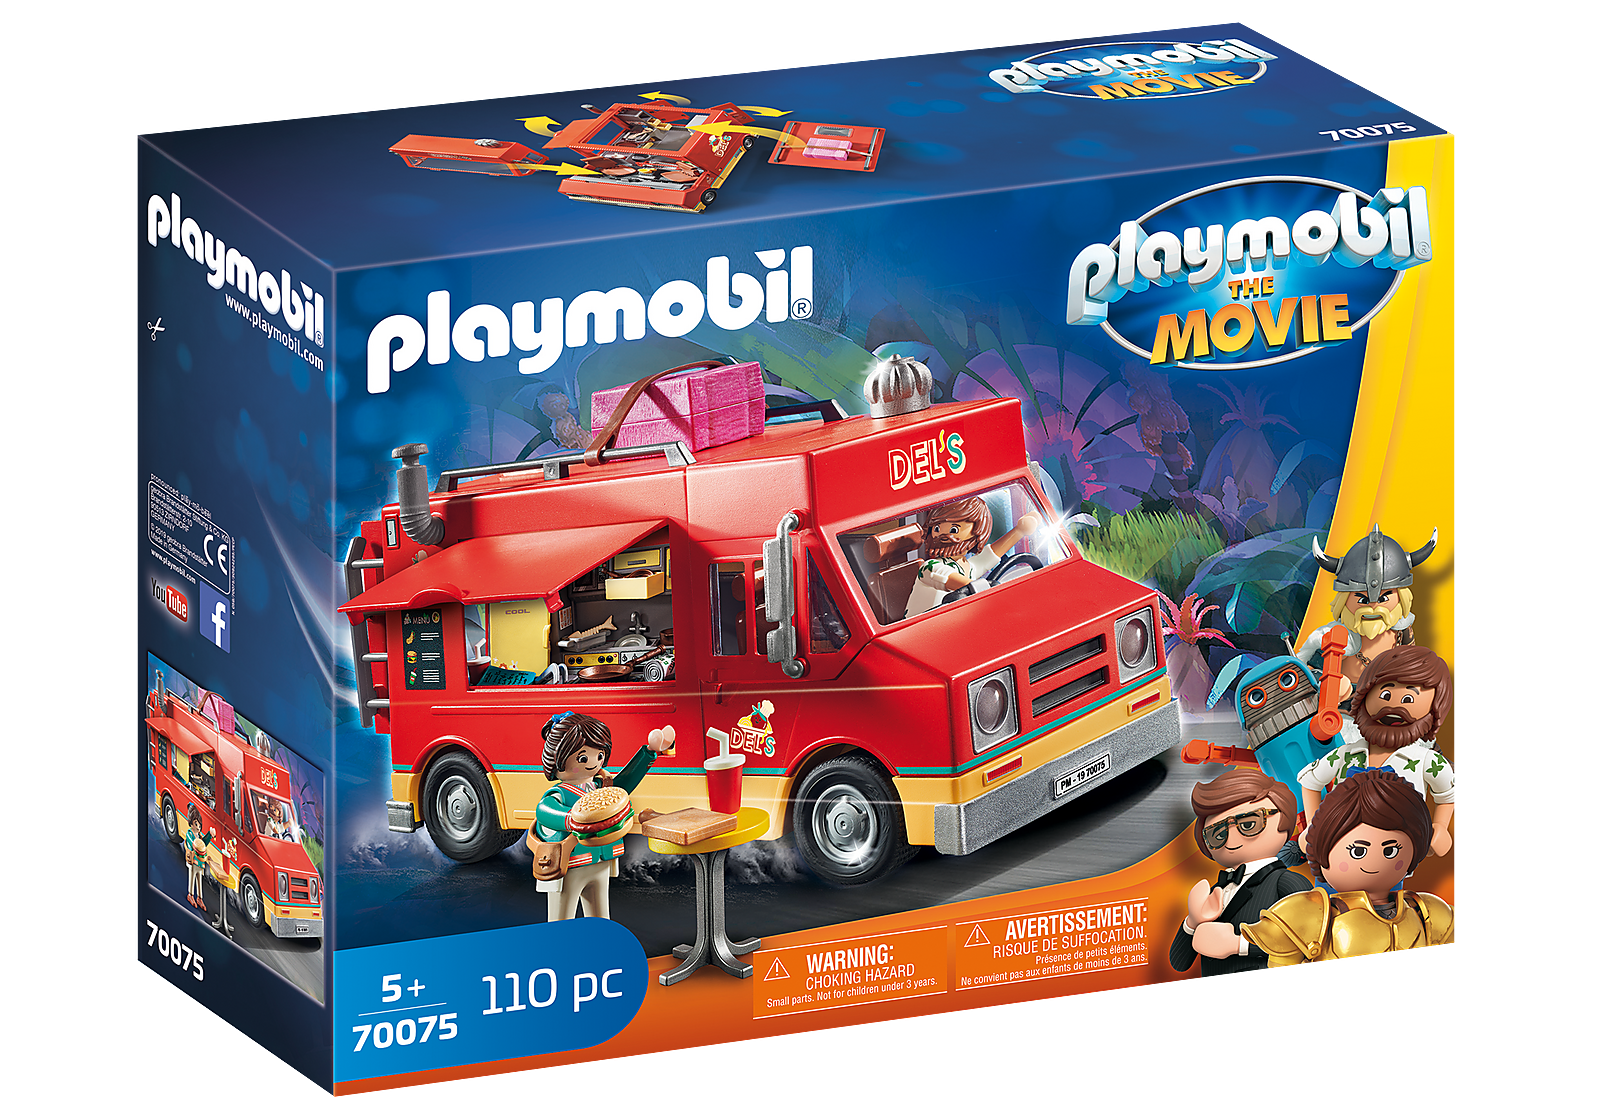 GENUINE   PLAYMOBIL  The Movie - Del's Food Truck 70075 Tracked P&P